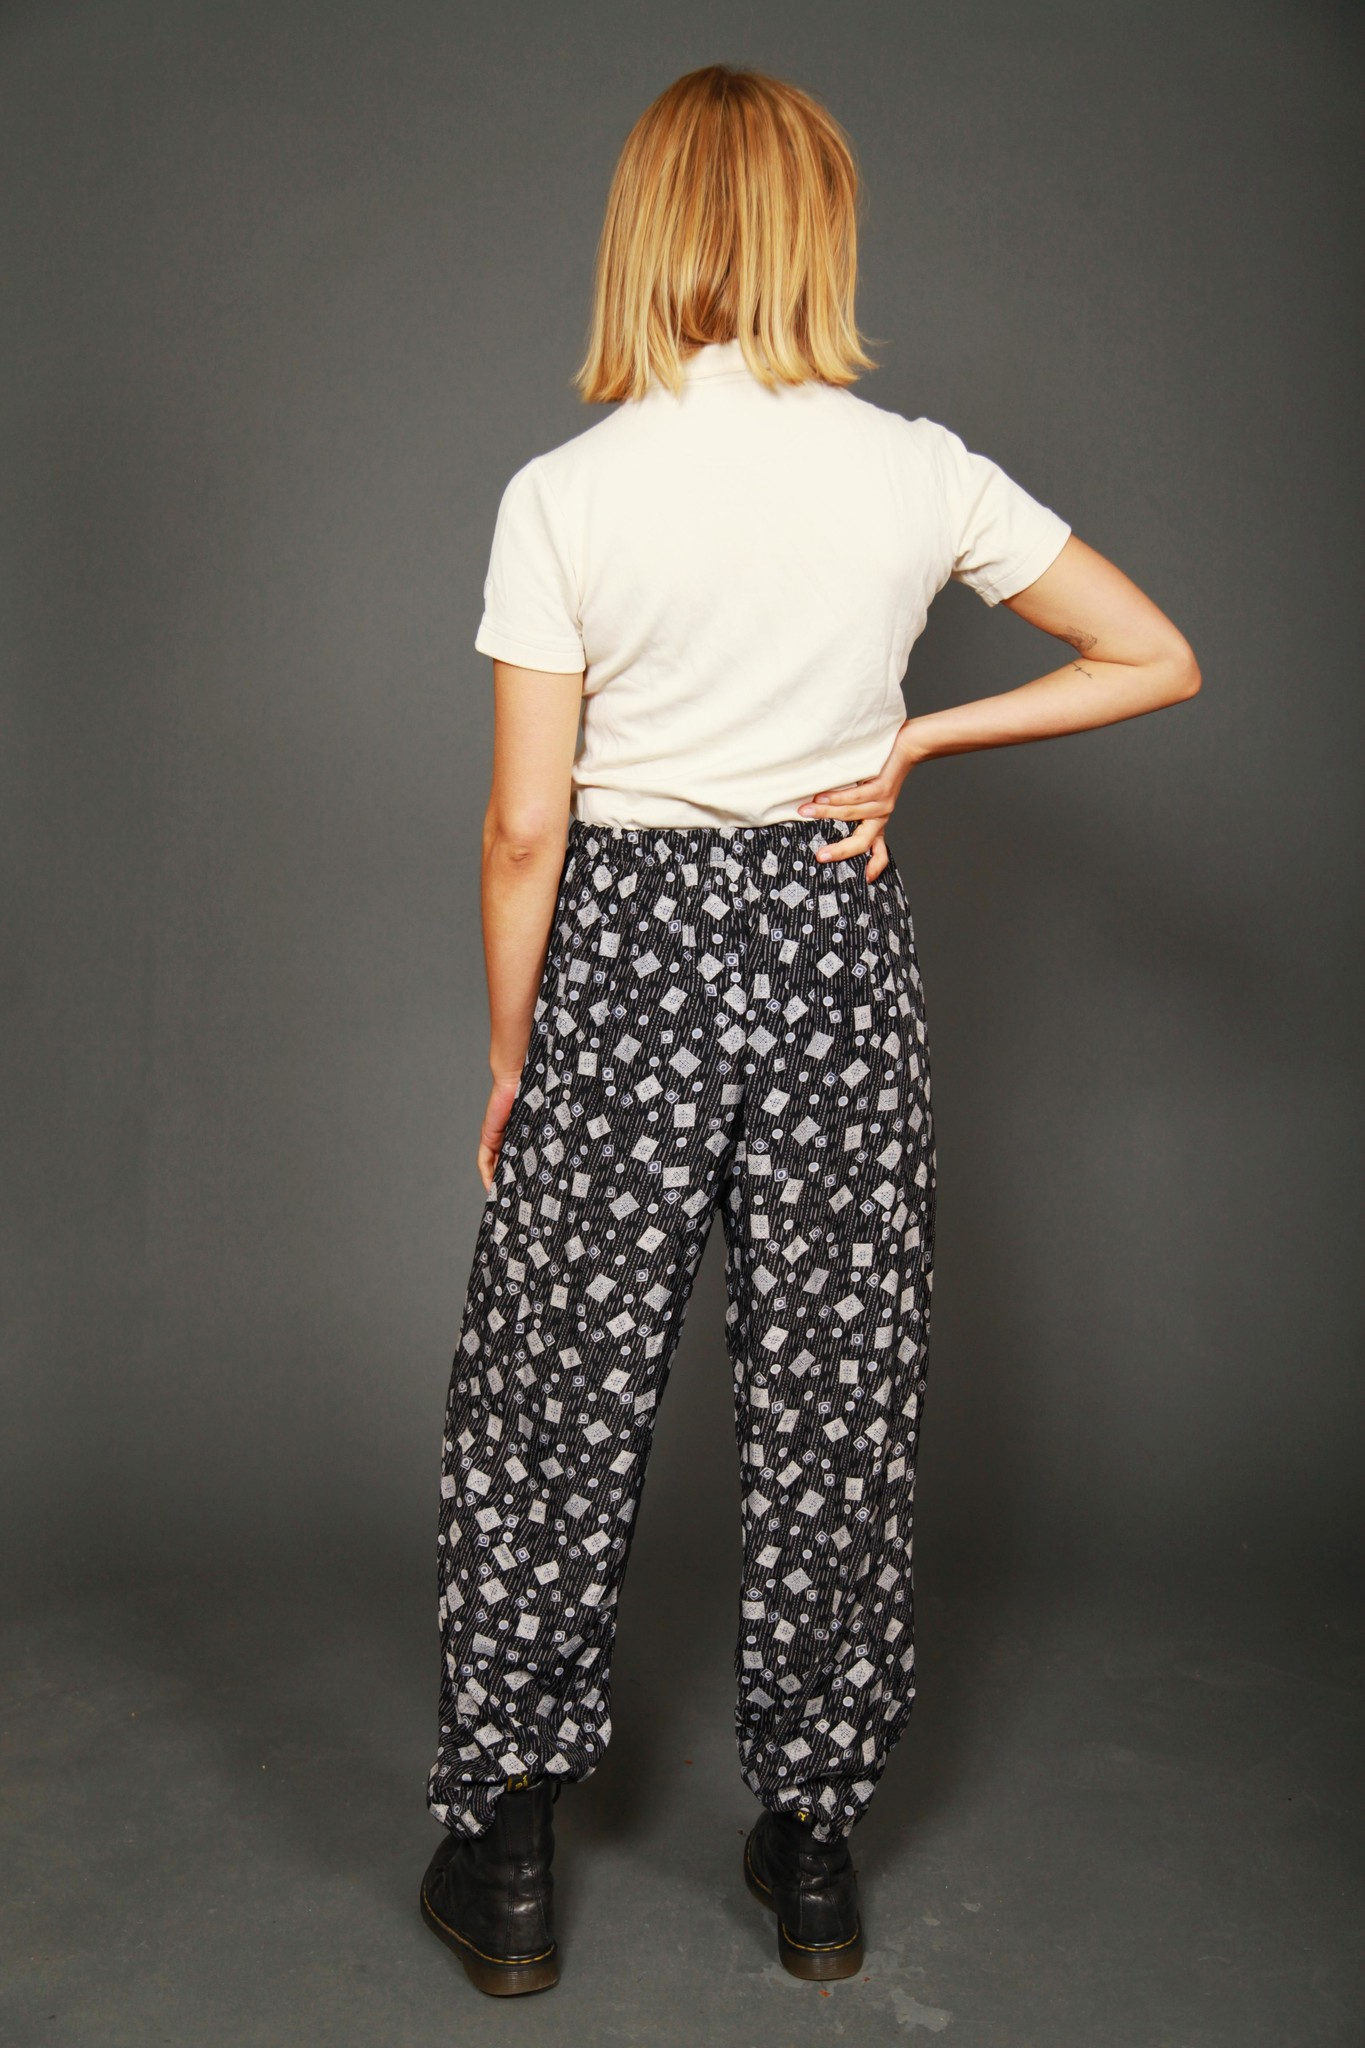 Comfortable 90s trousers